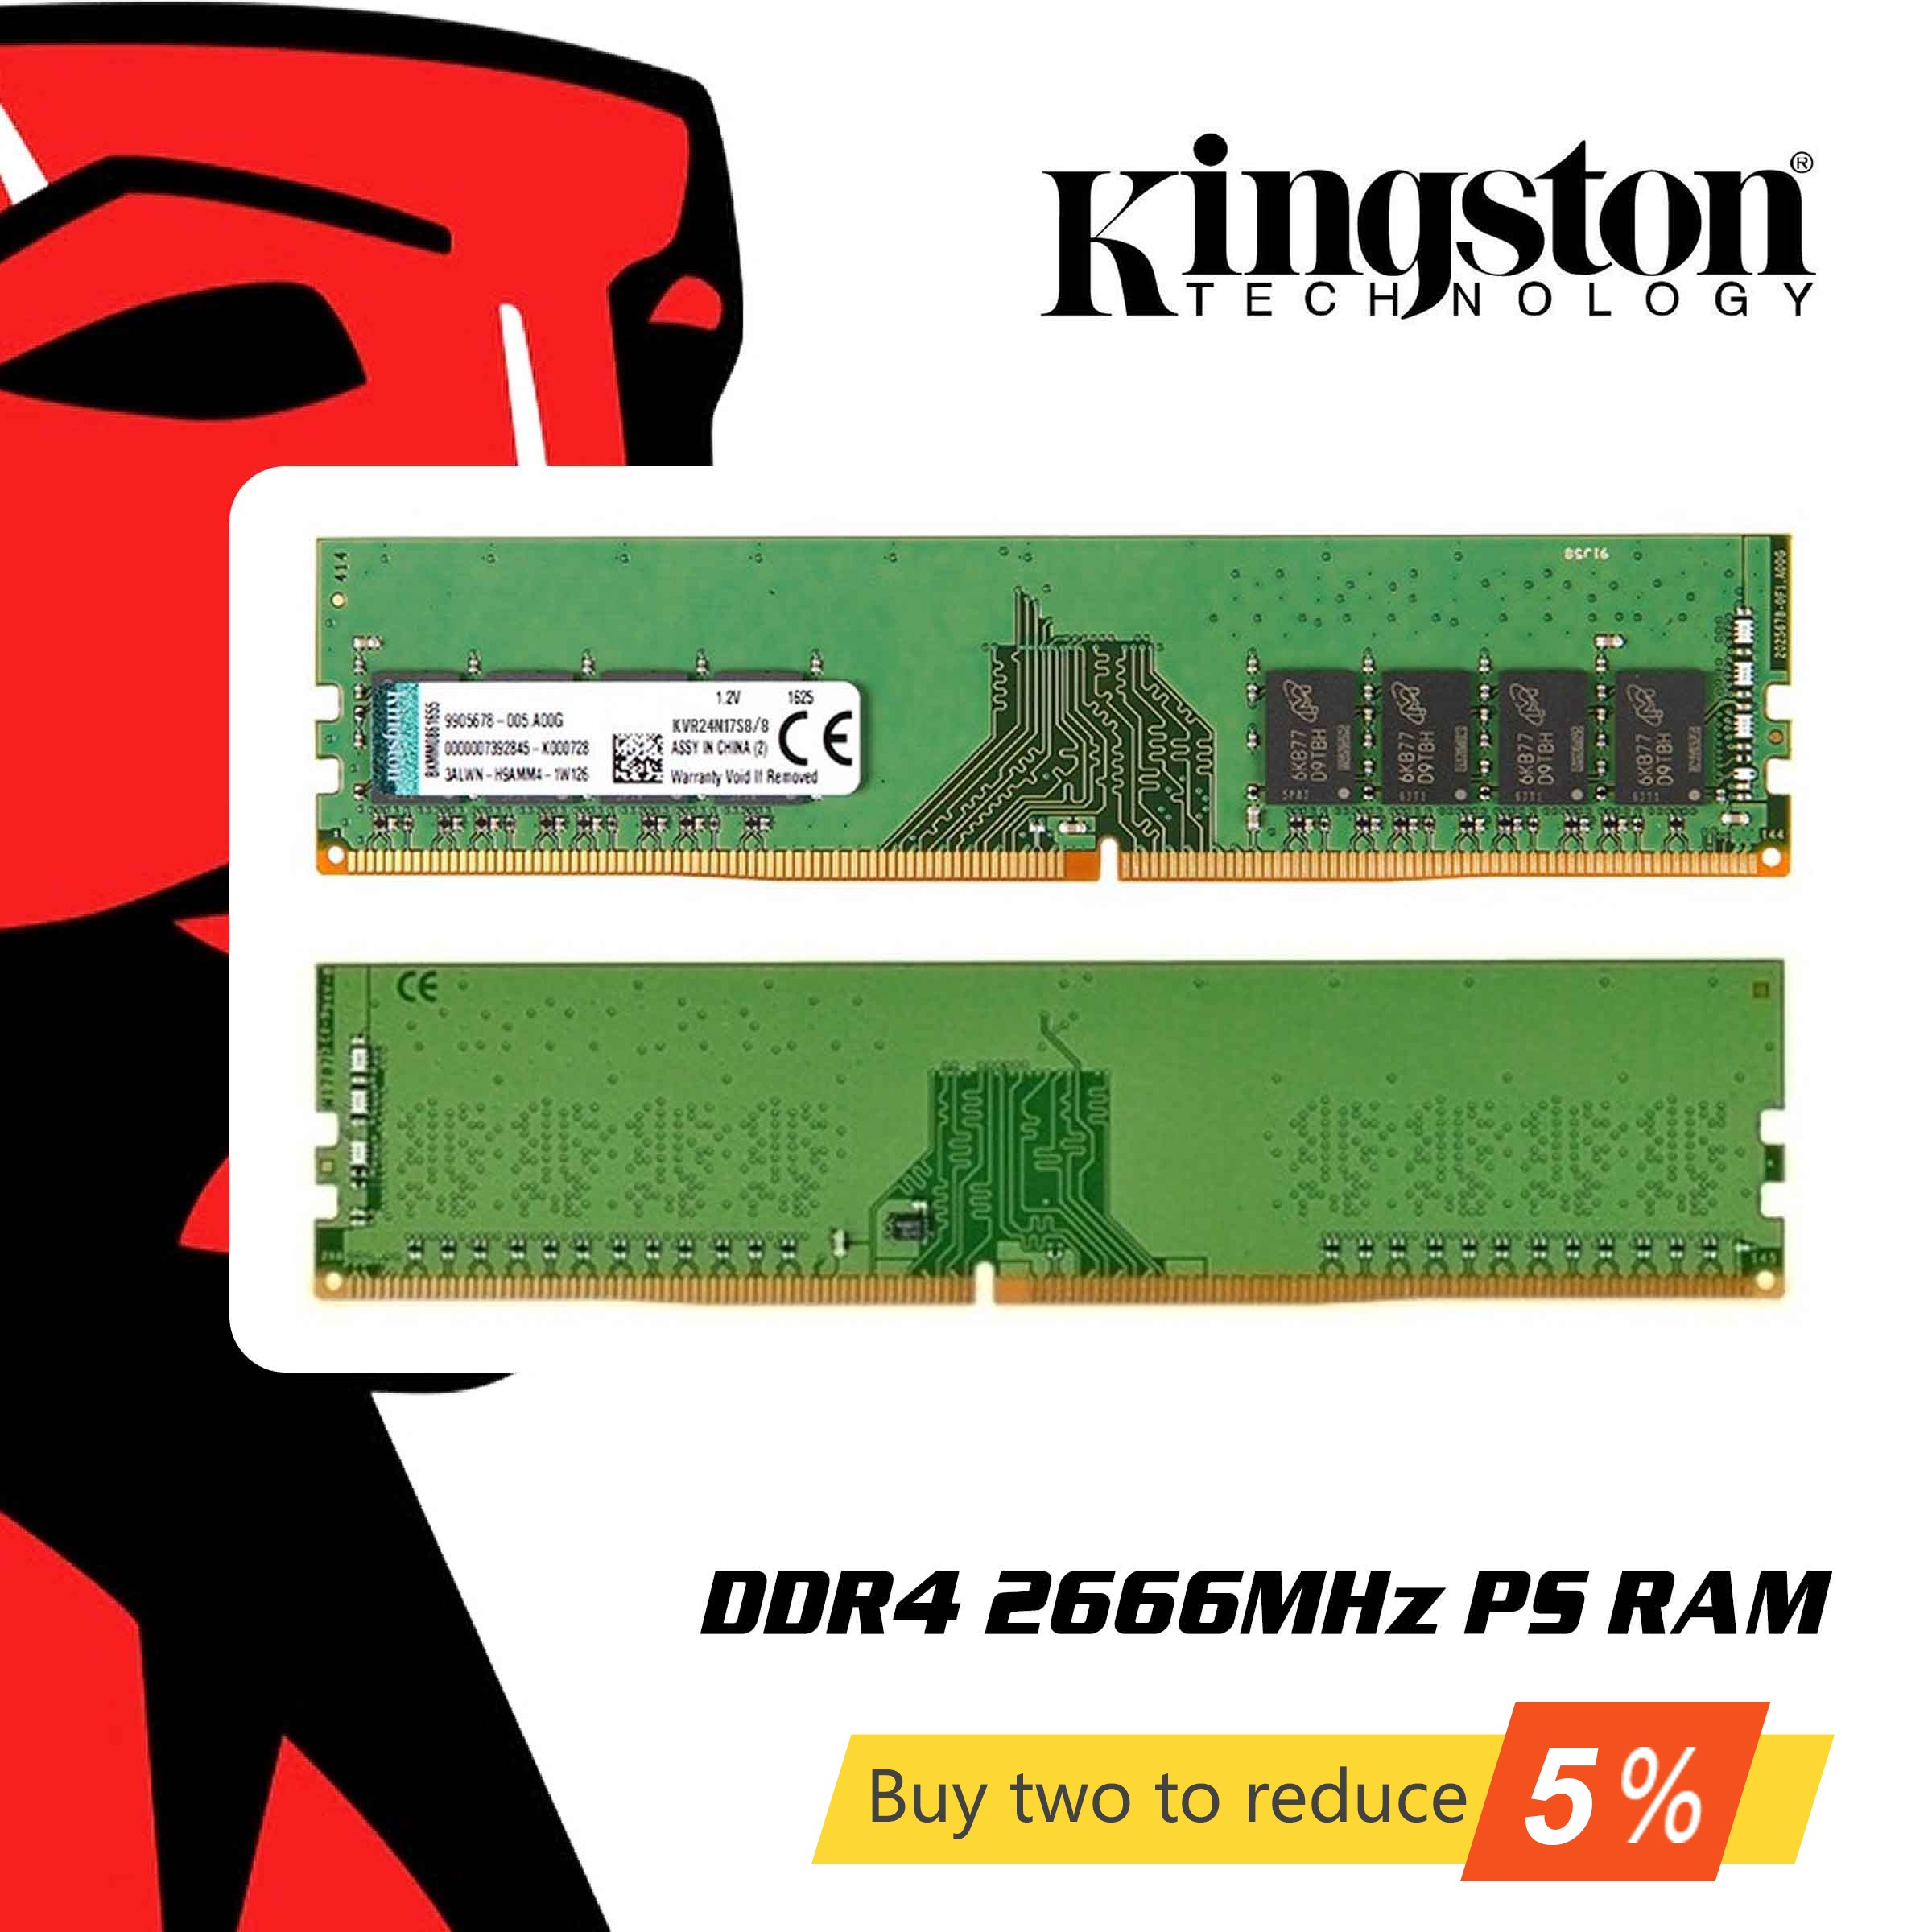 Original Kingston <font><b>DDR4</b></font> <font><b>RAM</b></font> Memory 8GB 4GB <font><b>16GB</b></font> 2666Mhz <font><b>Memoria</b></font> DDR 4 8 16 Gigabytes Gigs Sticks for Desktop PC <font><b>Notebook</b></font> Laptop image